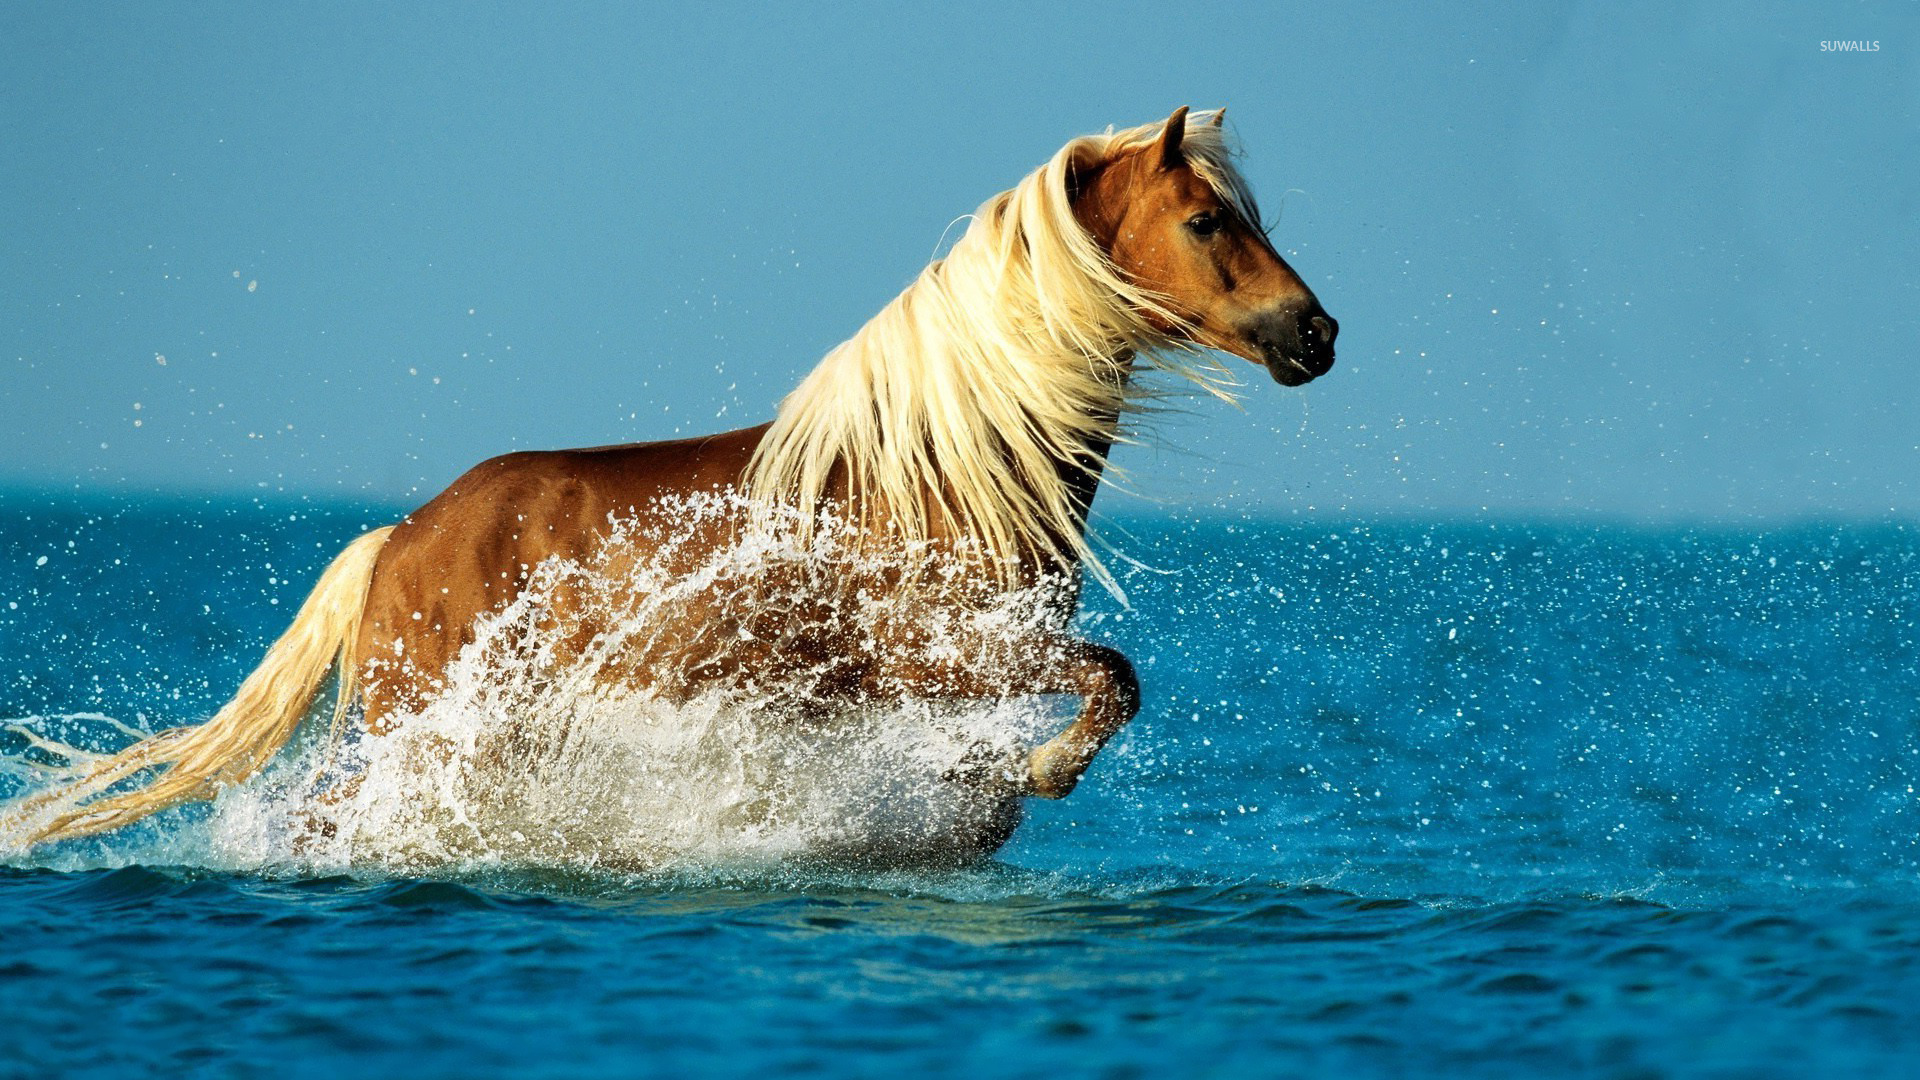 horse in the water wallpaper animal wallpapers 22267